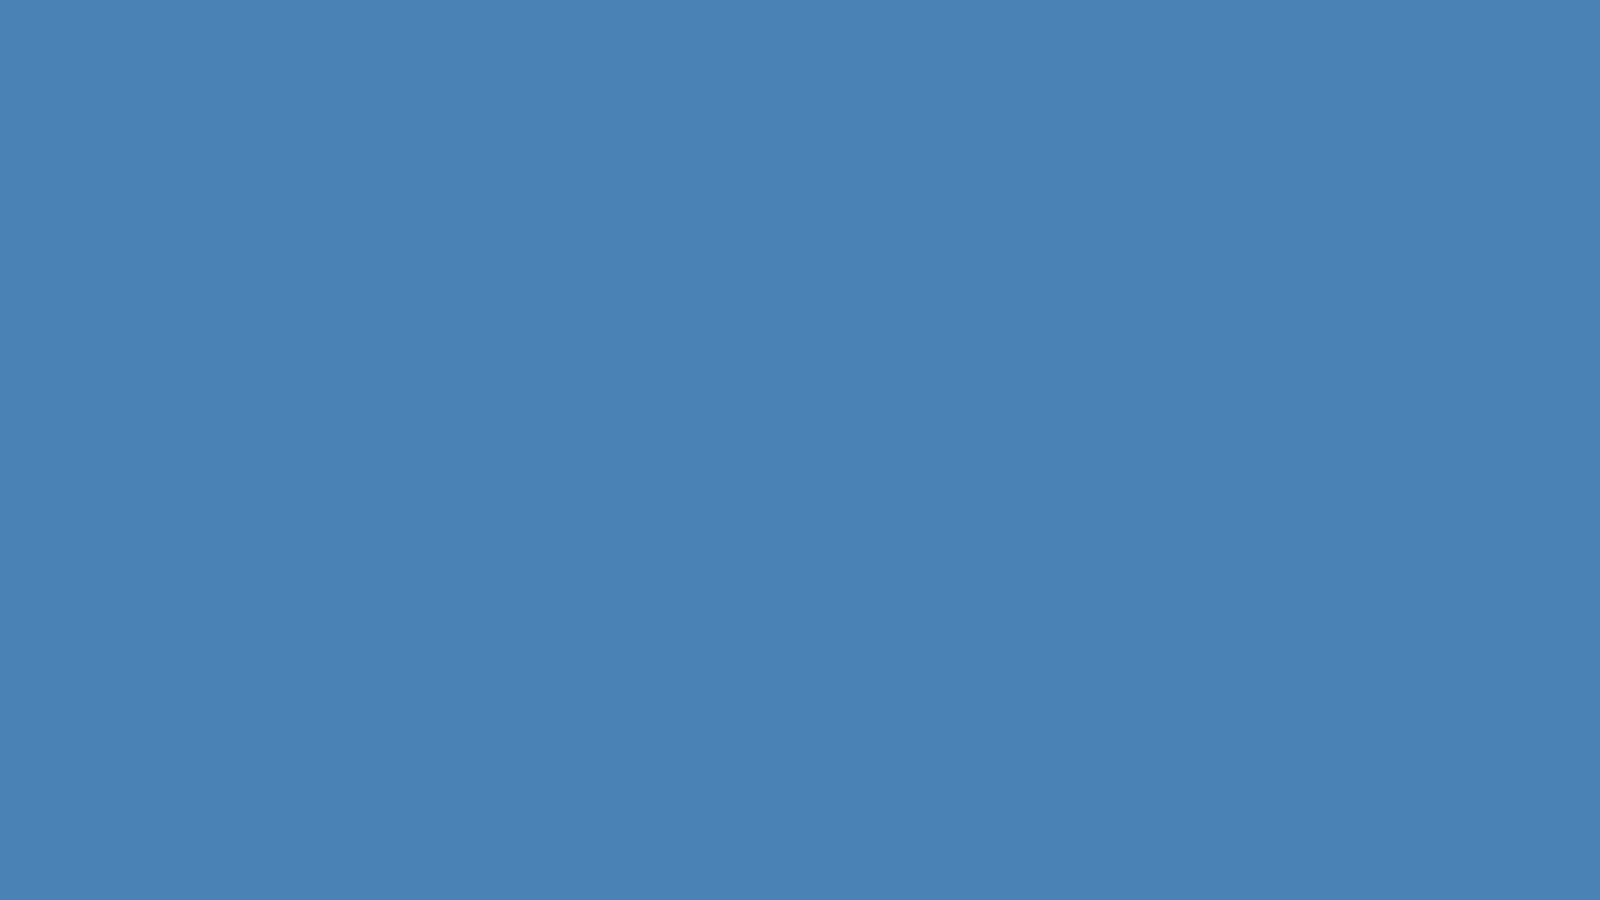 1600x900 Steel Blue Solid Color Background